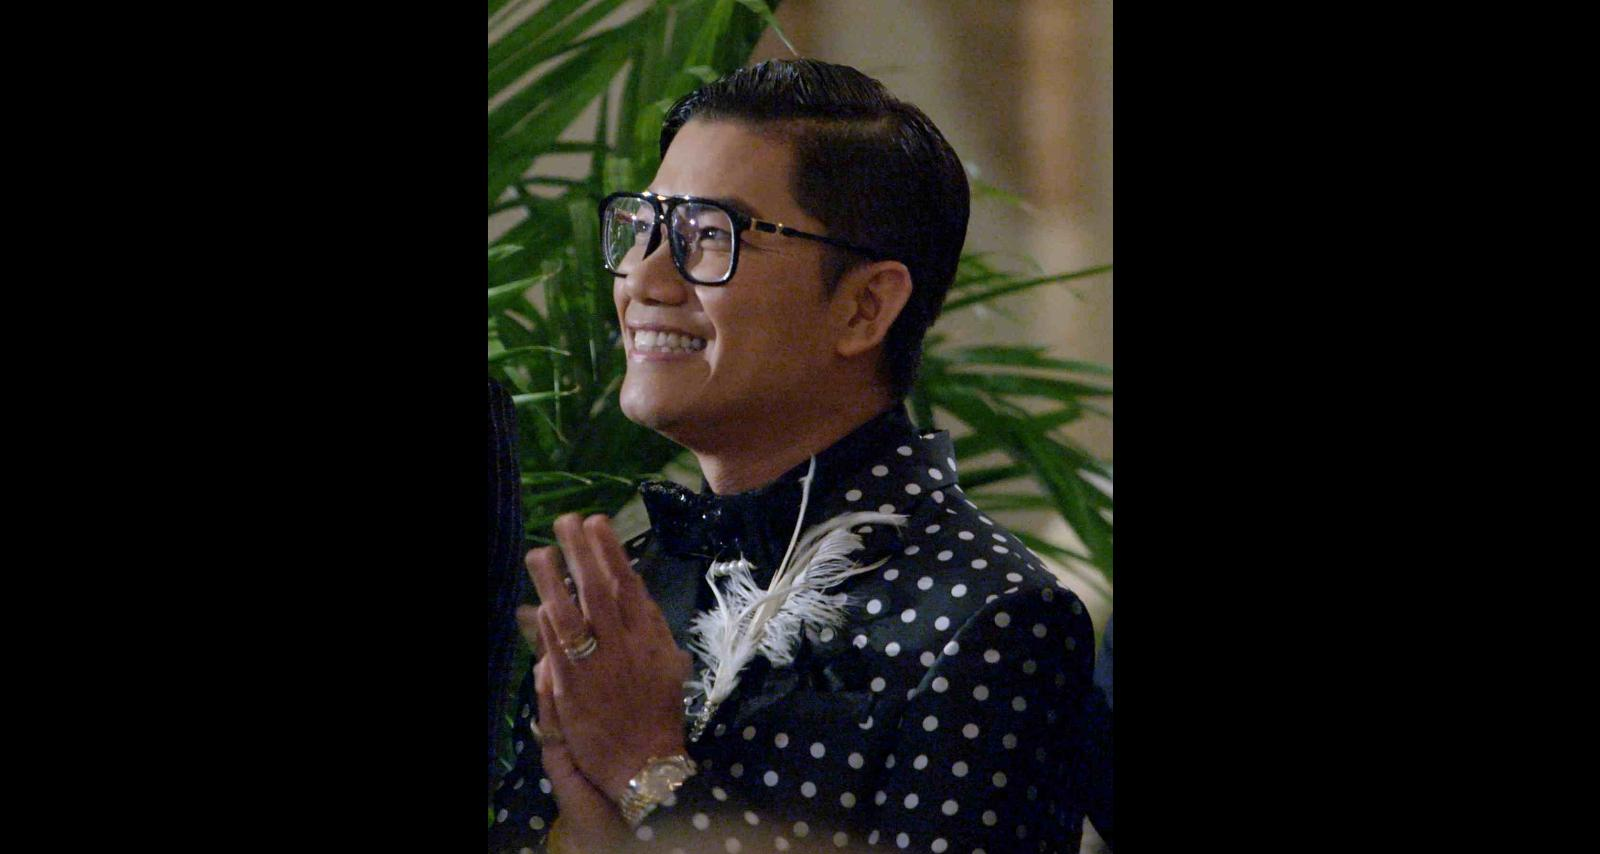 """Thai Nguyen Wiki, Age, Vietnamese and Facts about the Fashion Designer on Netflix's """"Say I Do"""""""